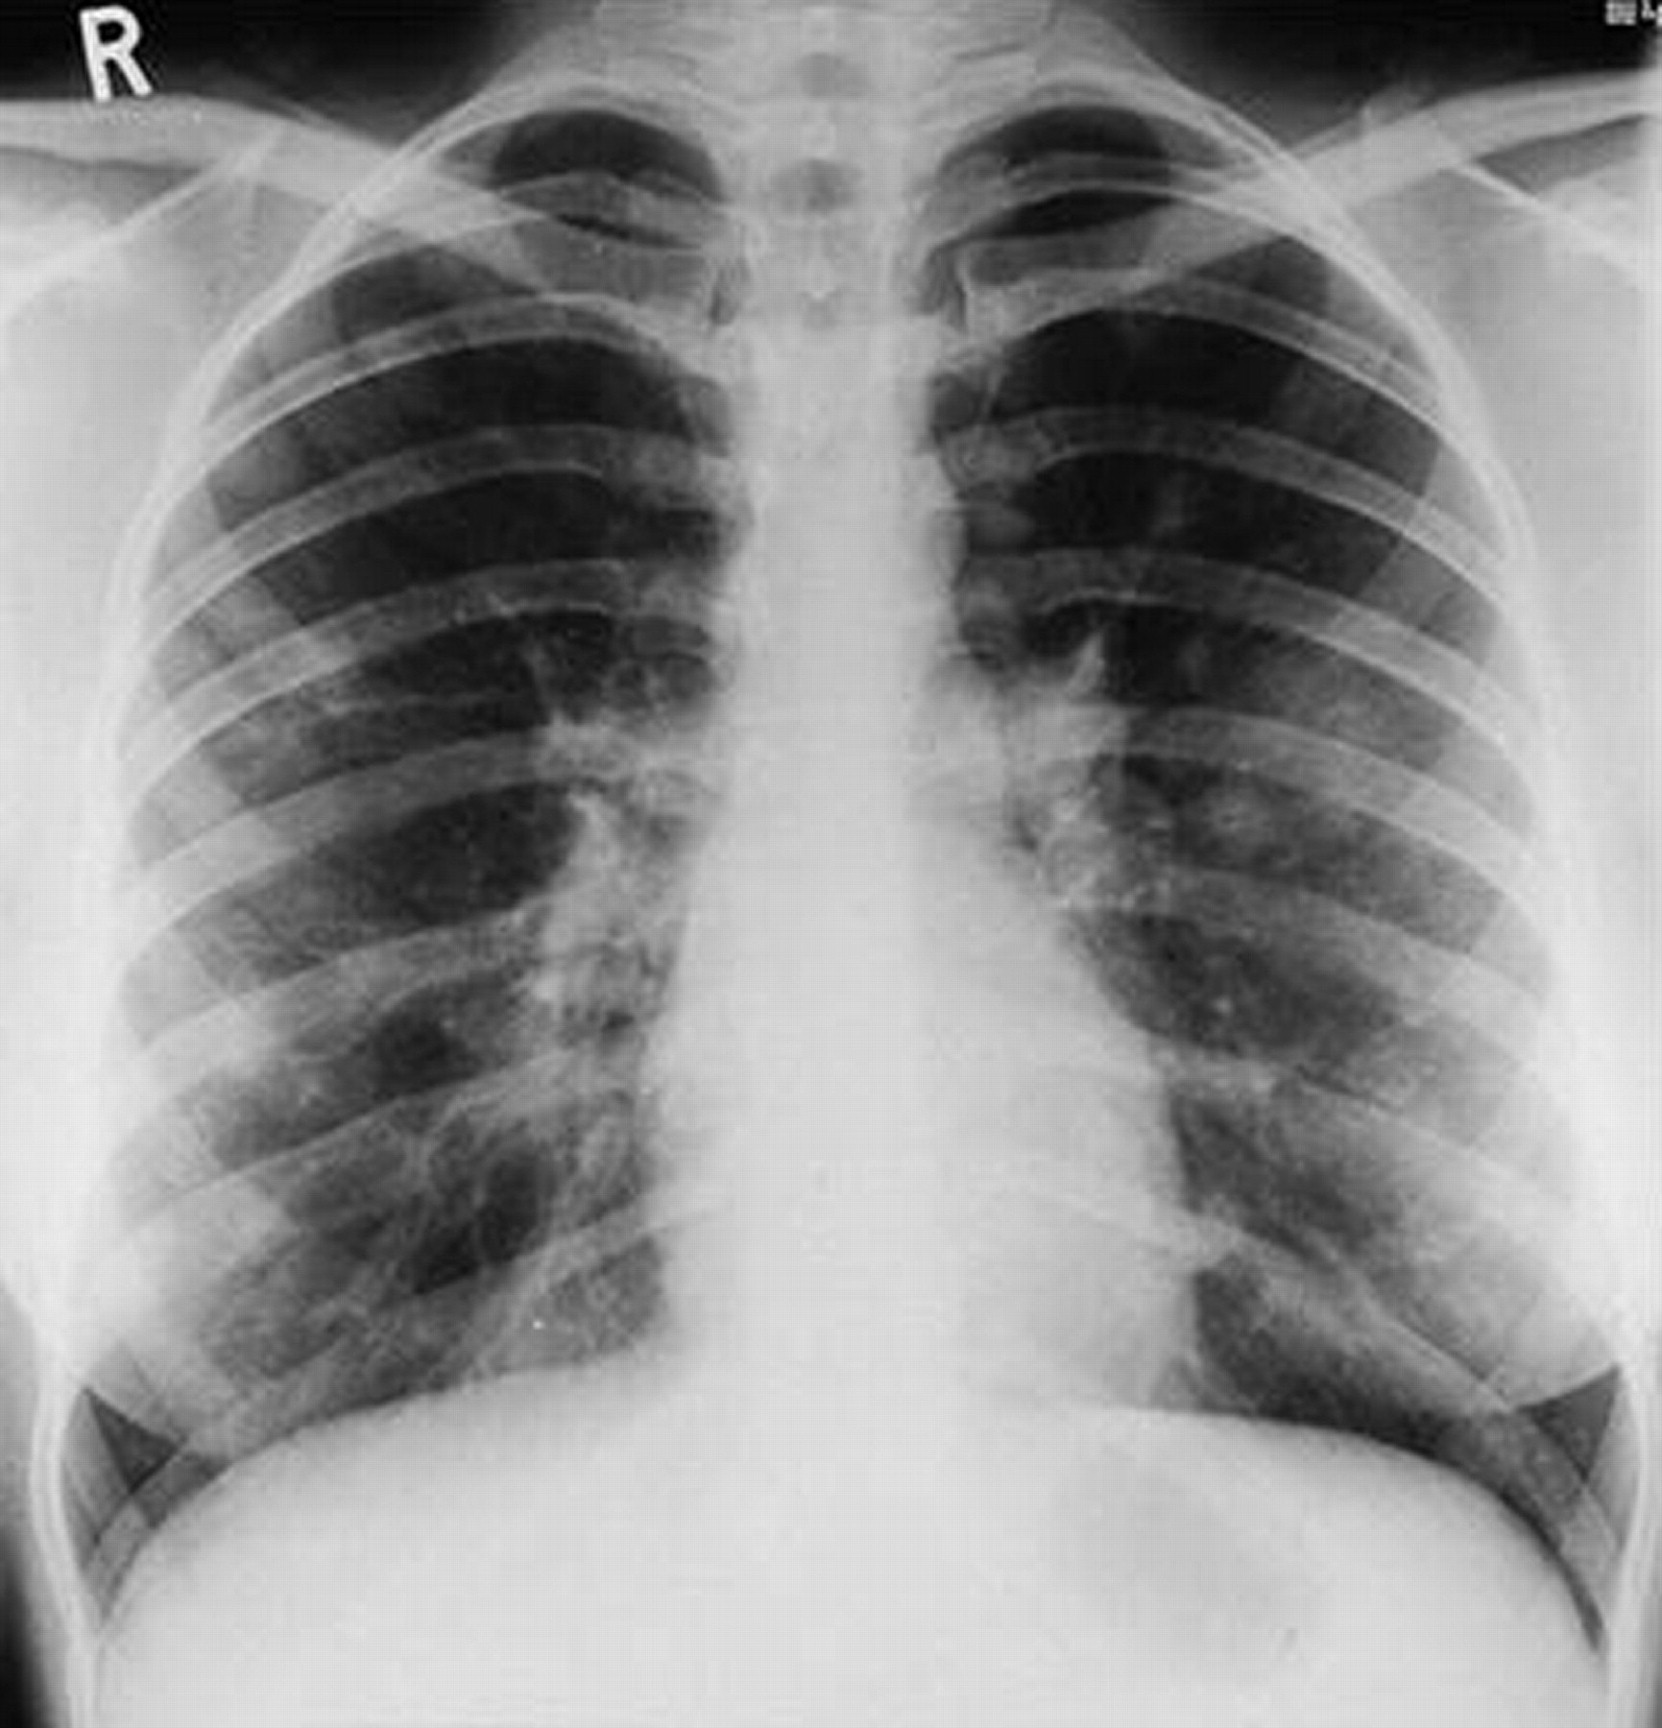 Parasitic Infections Of The Lung A Guide For The